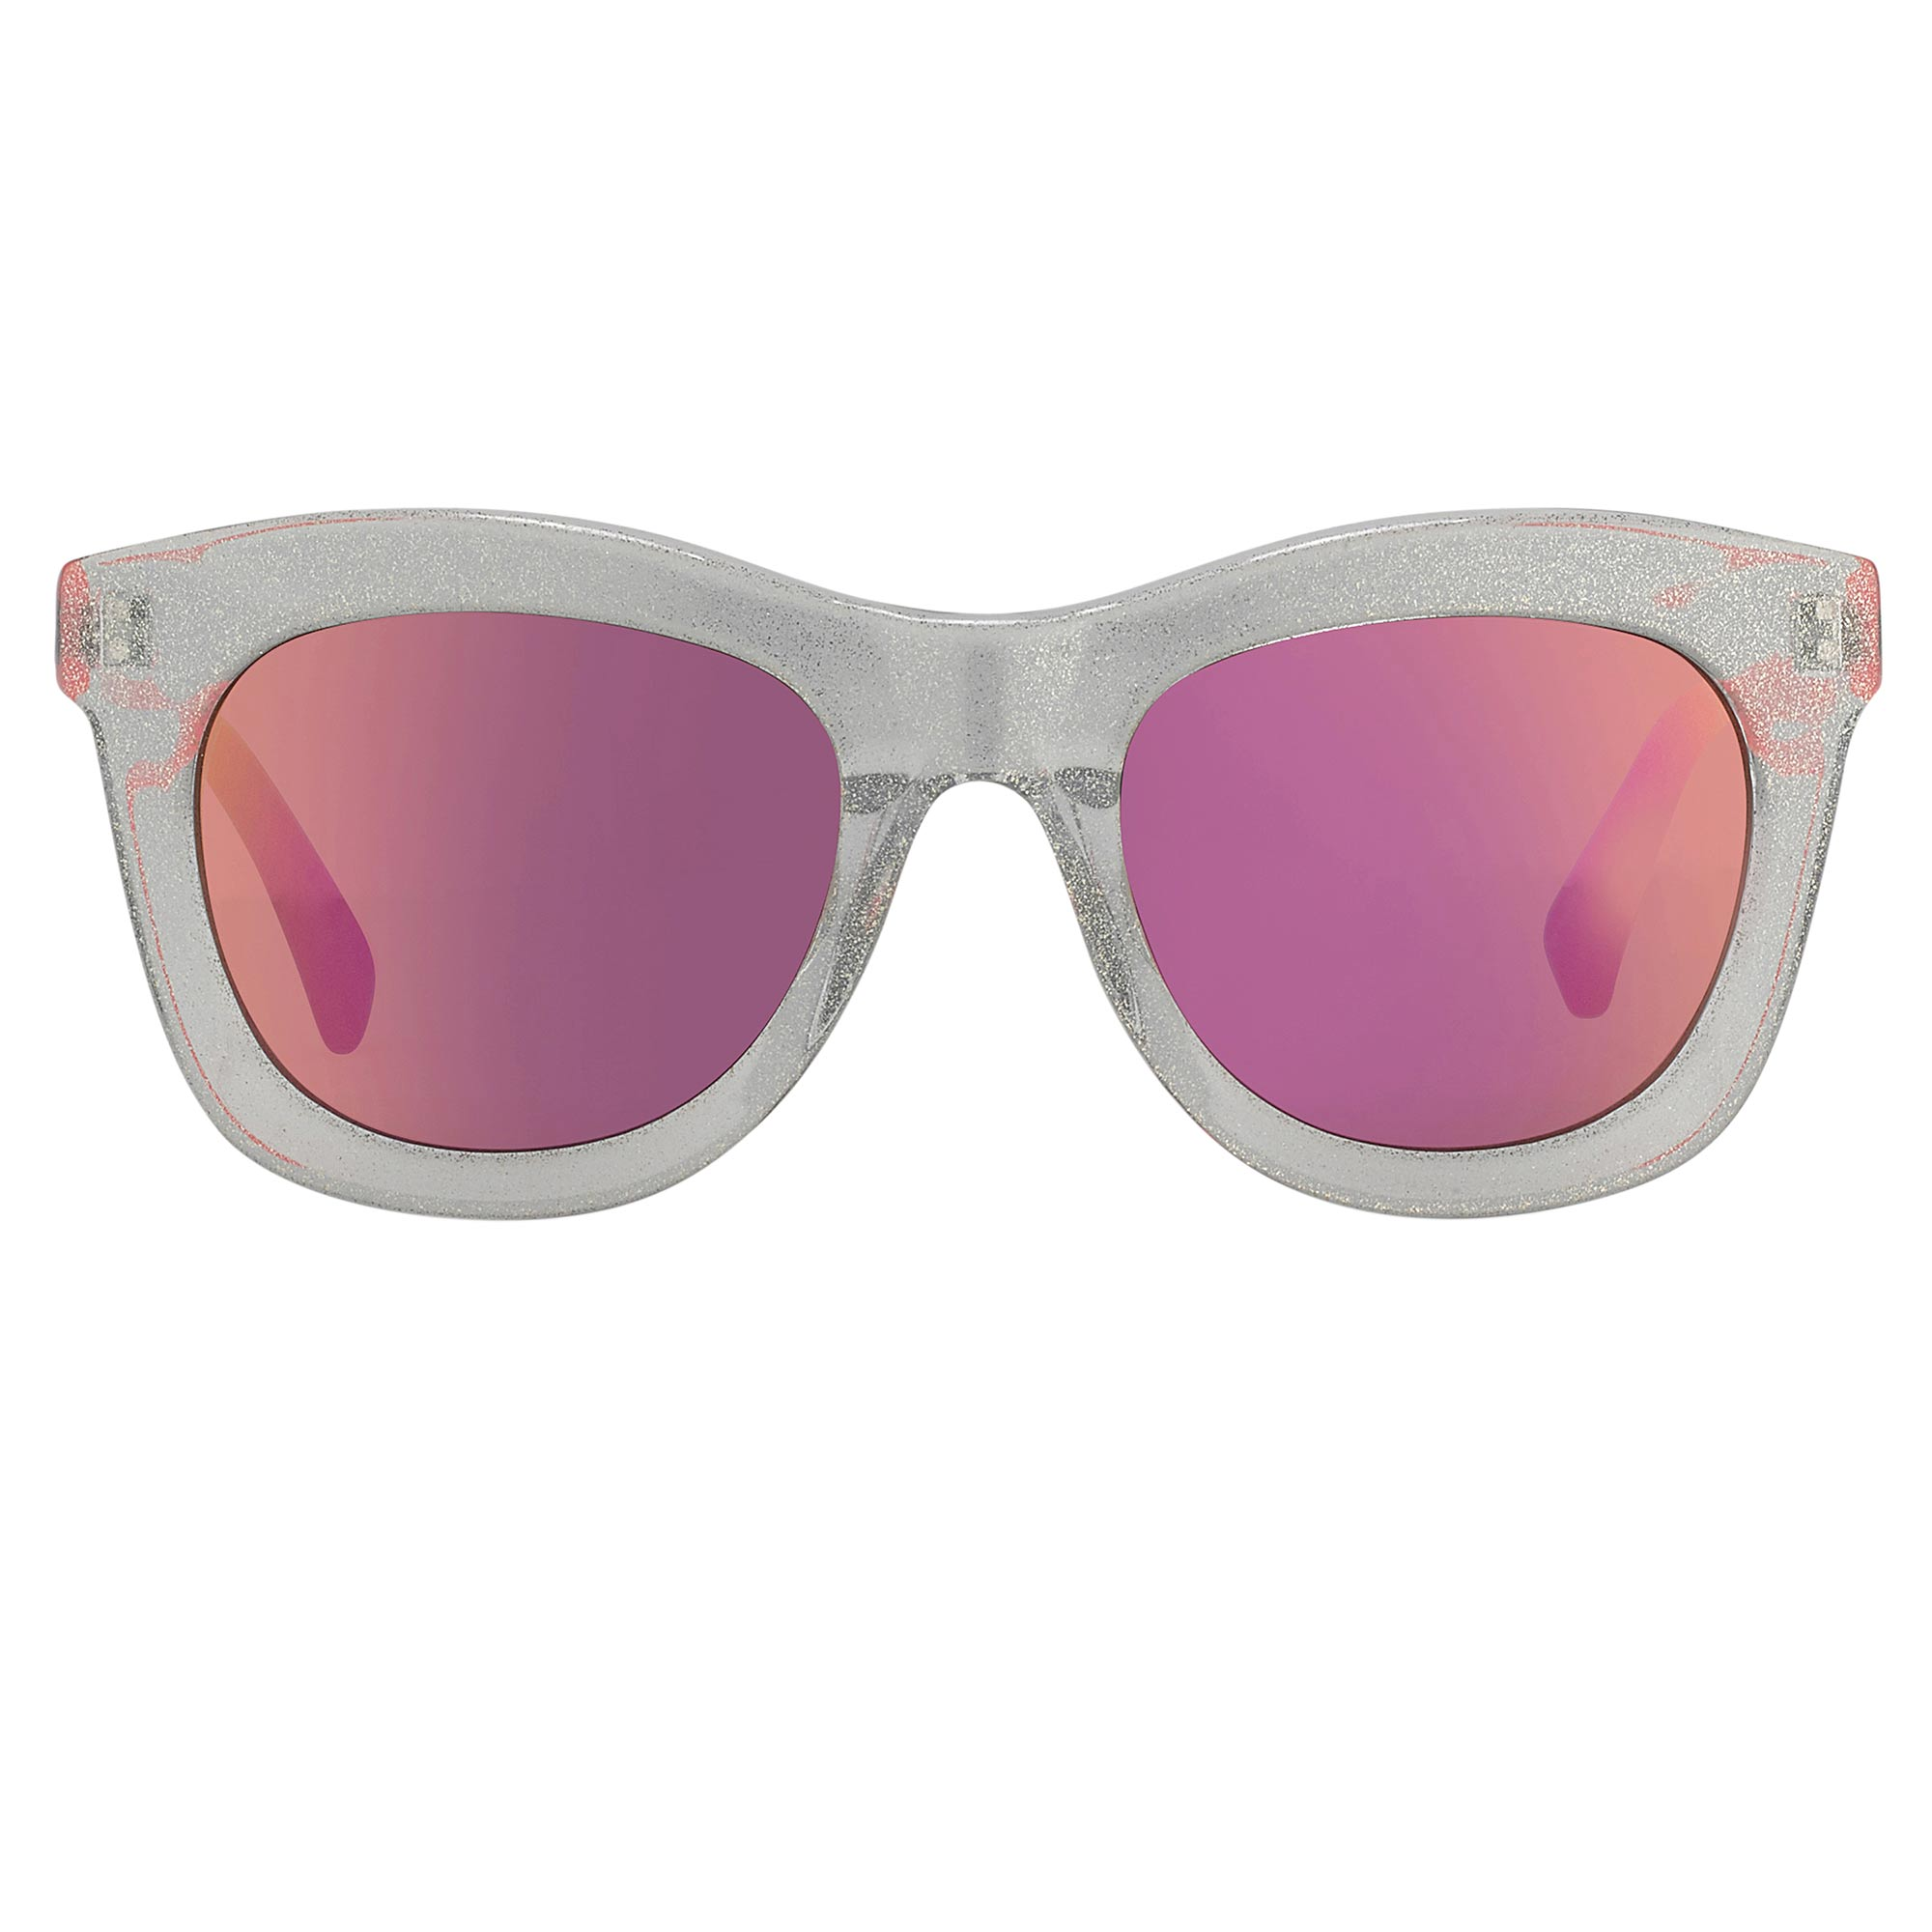 Markus Lupfer Sunglasses D-Frame Blue Glitter Neon Pink Lenses Category 3 Dark Tint ML5C6SUN - Watches & Crystals